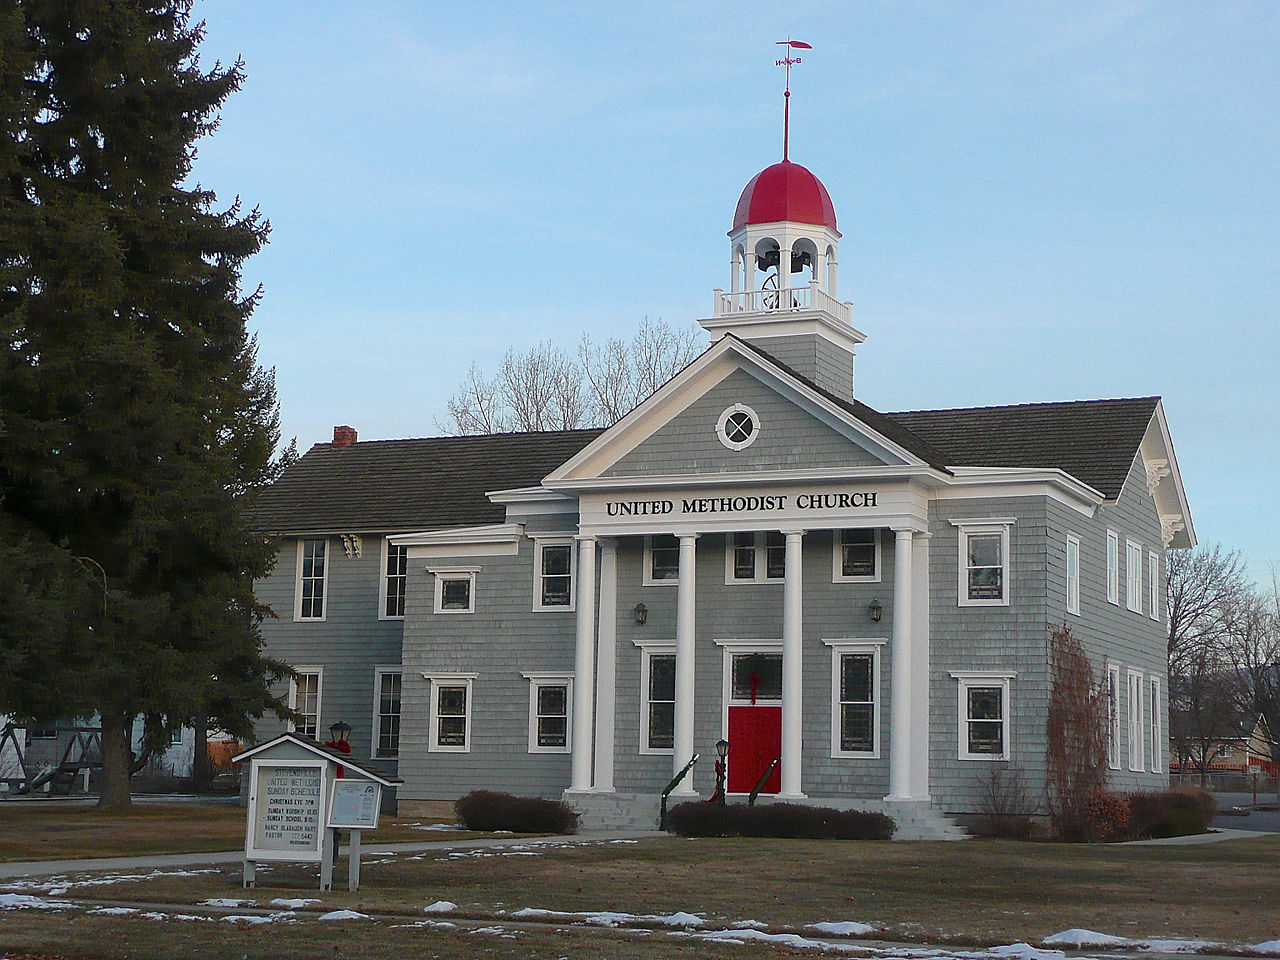 Stevensville United Methodist Church was originally built as a school in 1885. It was converted into a church in 1928.